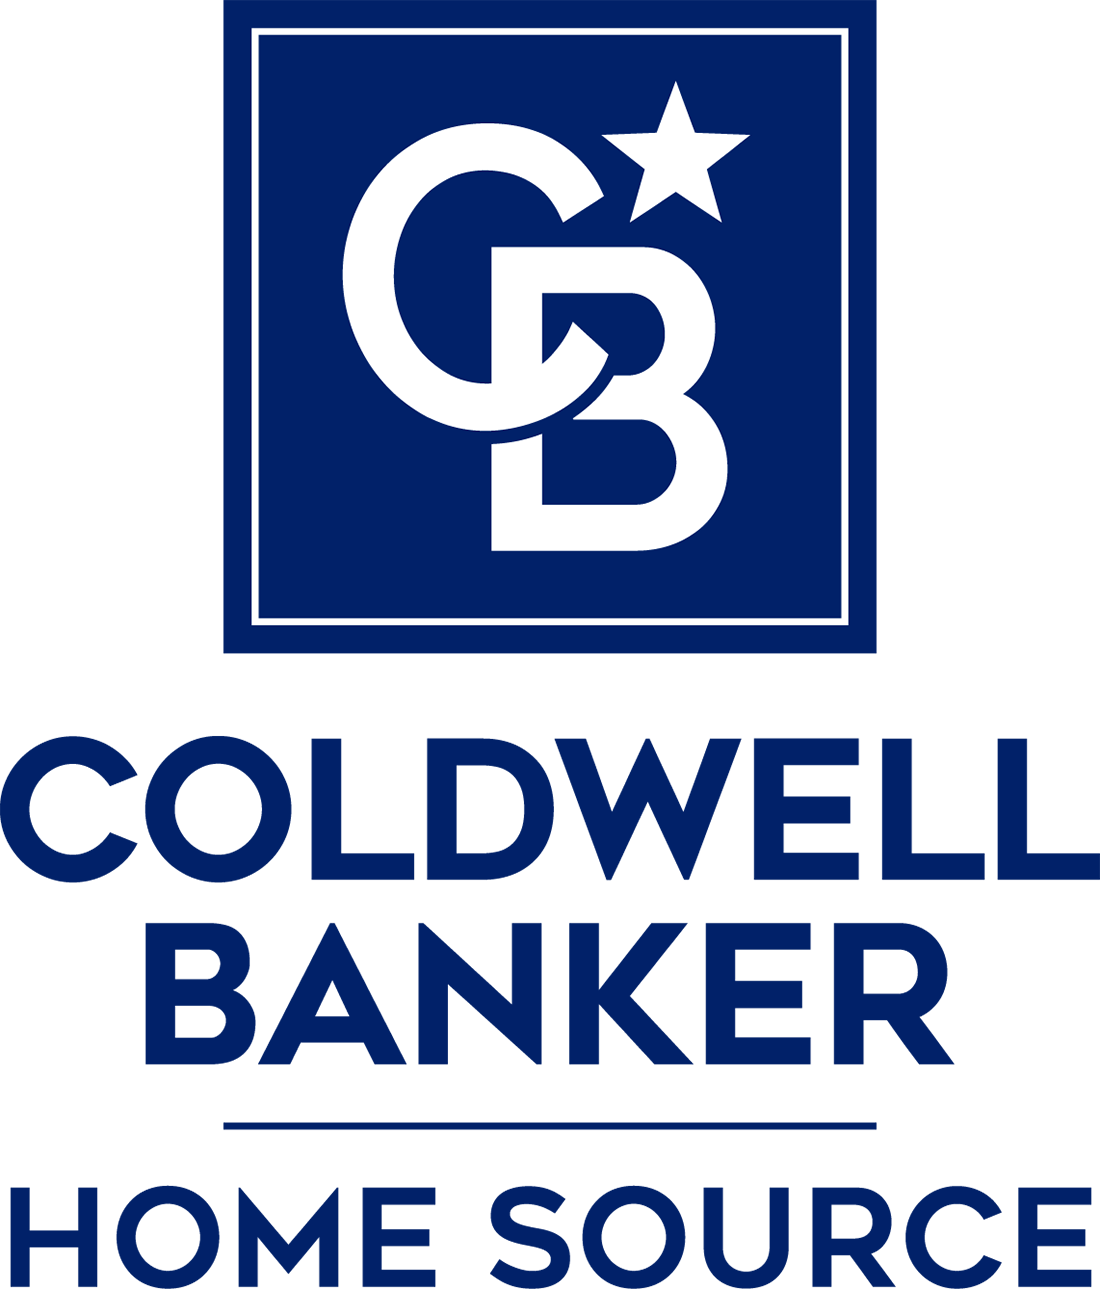 Jeff Nyal - Coldwell Banker Home Source Logo